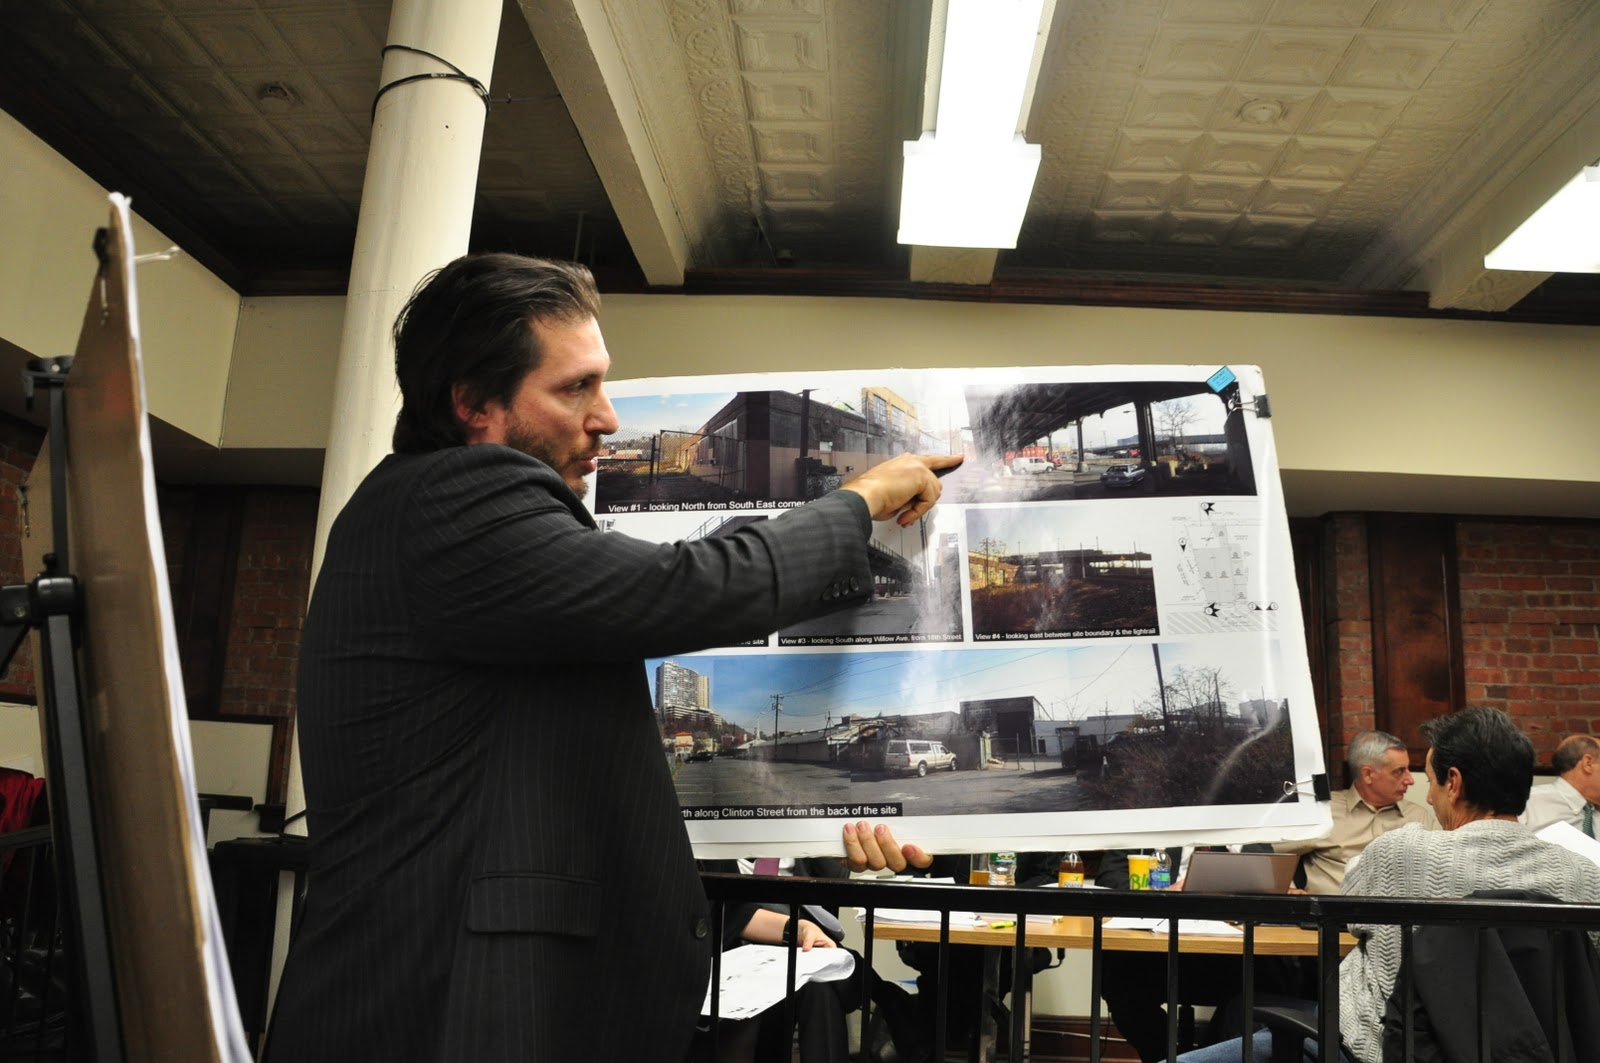 the hoboken journal update weehawken or richard turner frank minivervini a prominent hoboken architect presents his plans to the board for hoboken unleashed the plan as presented calls for up 88 kennels in the